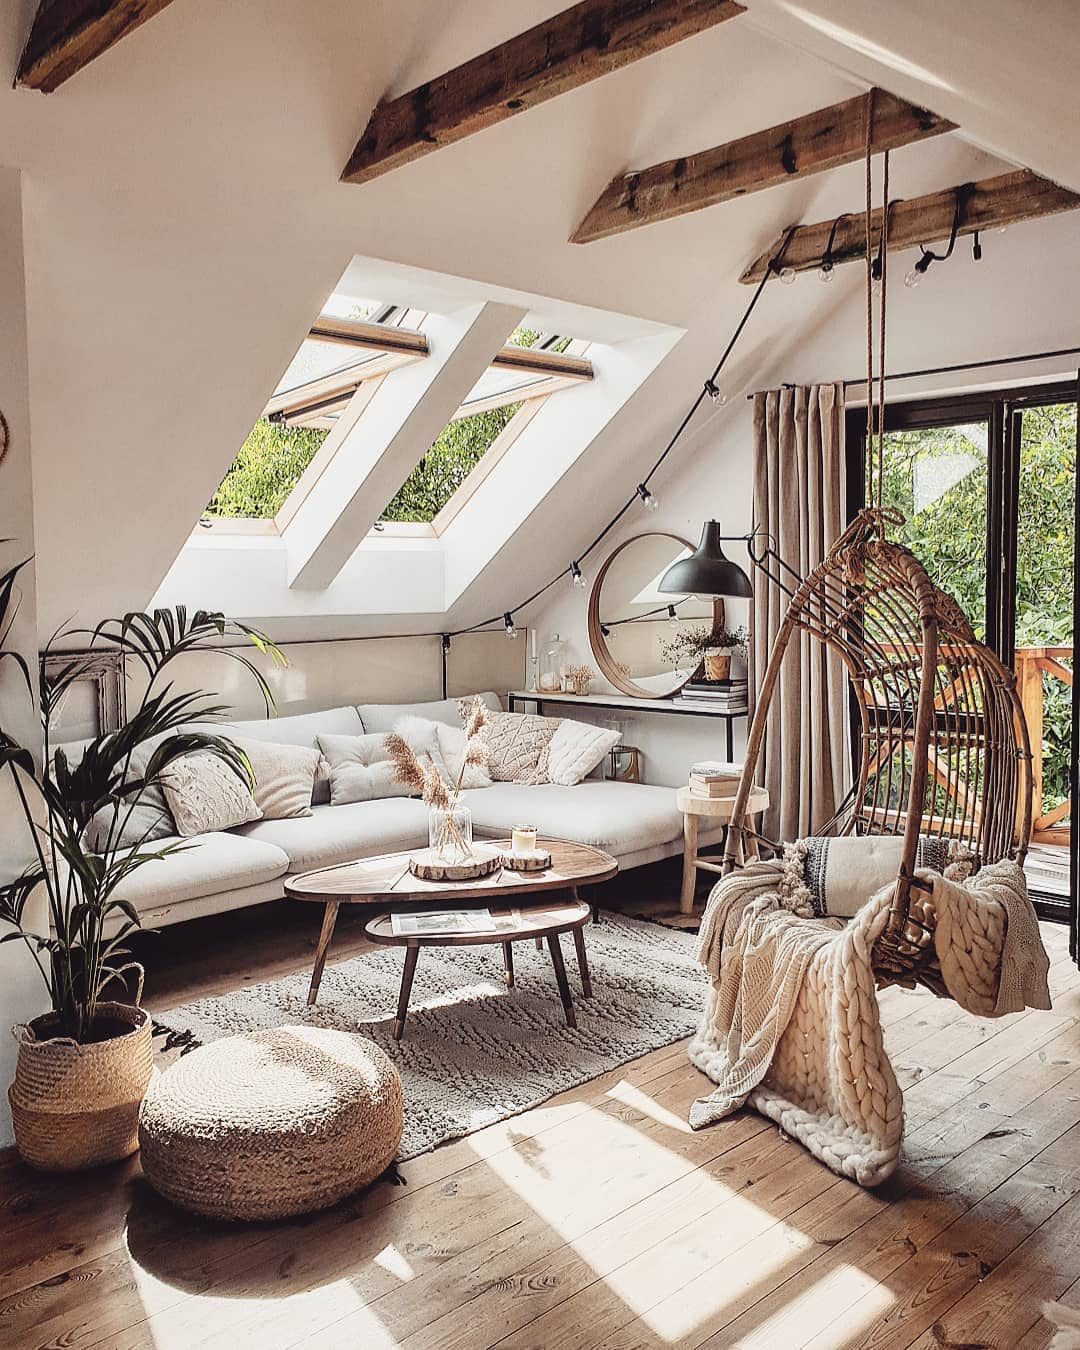 10 Powerful Tips For A Cozy Home Interior | Decoholic